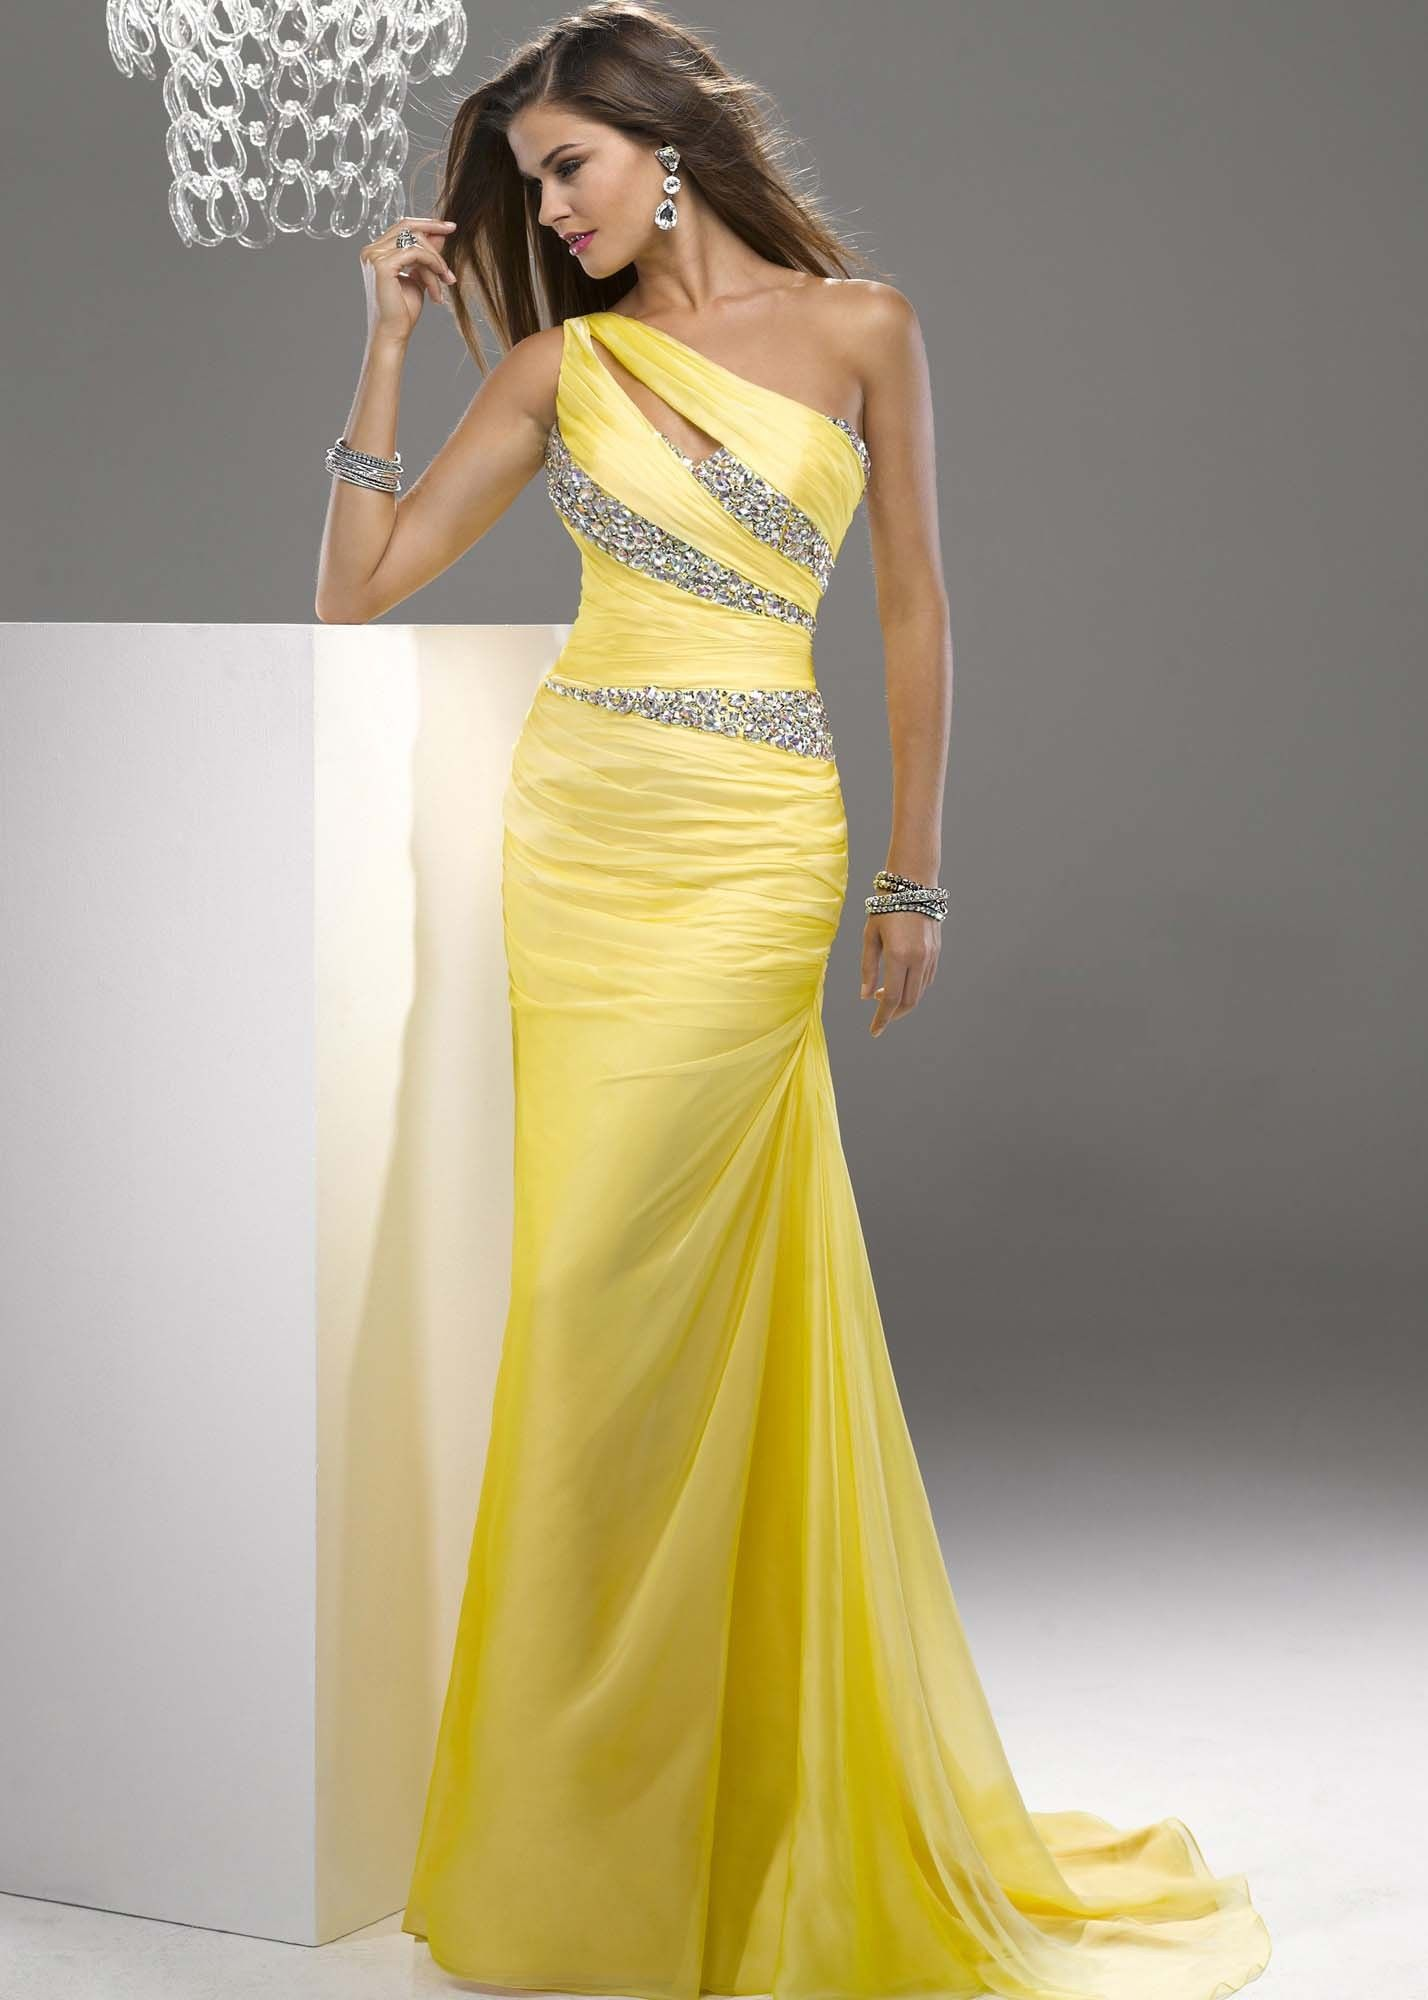 1000  images about prom dresses on Pinterest - One shoulder ...